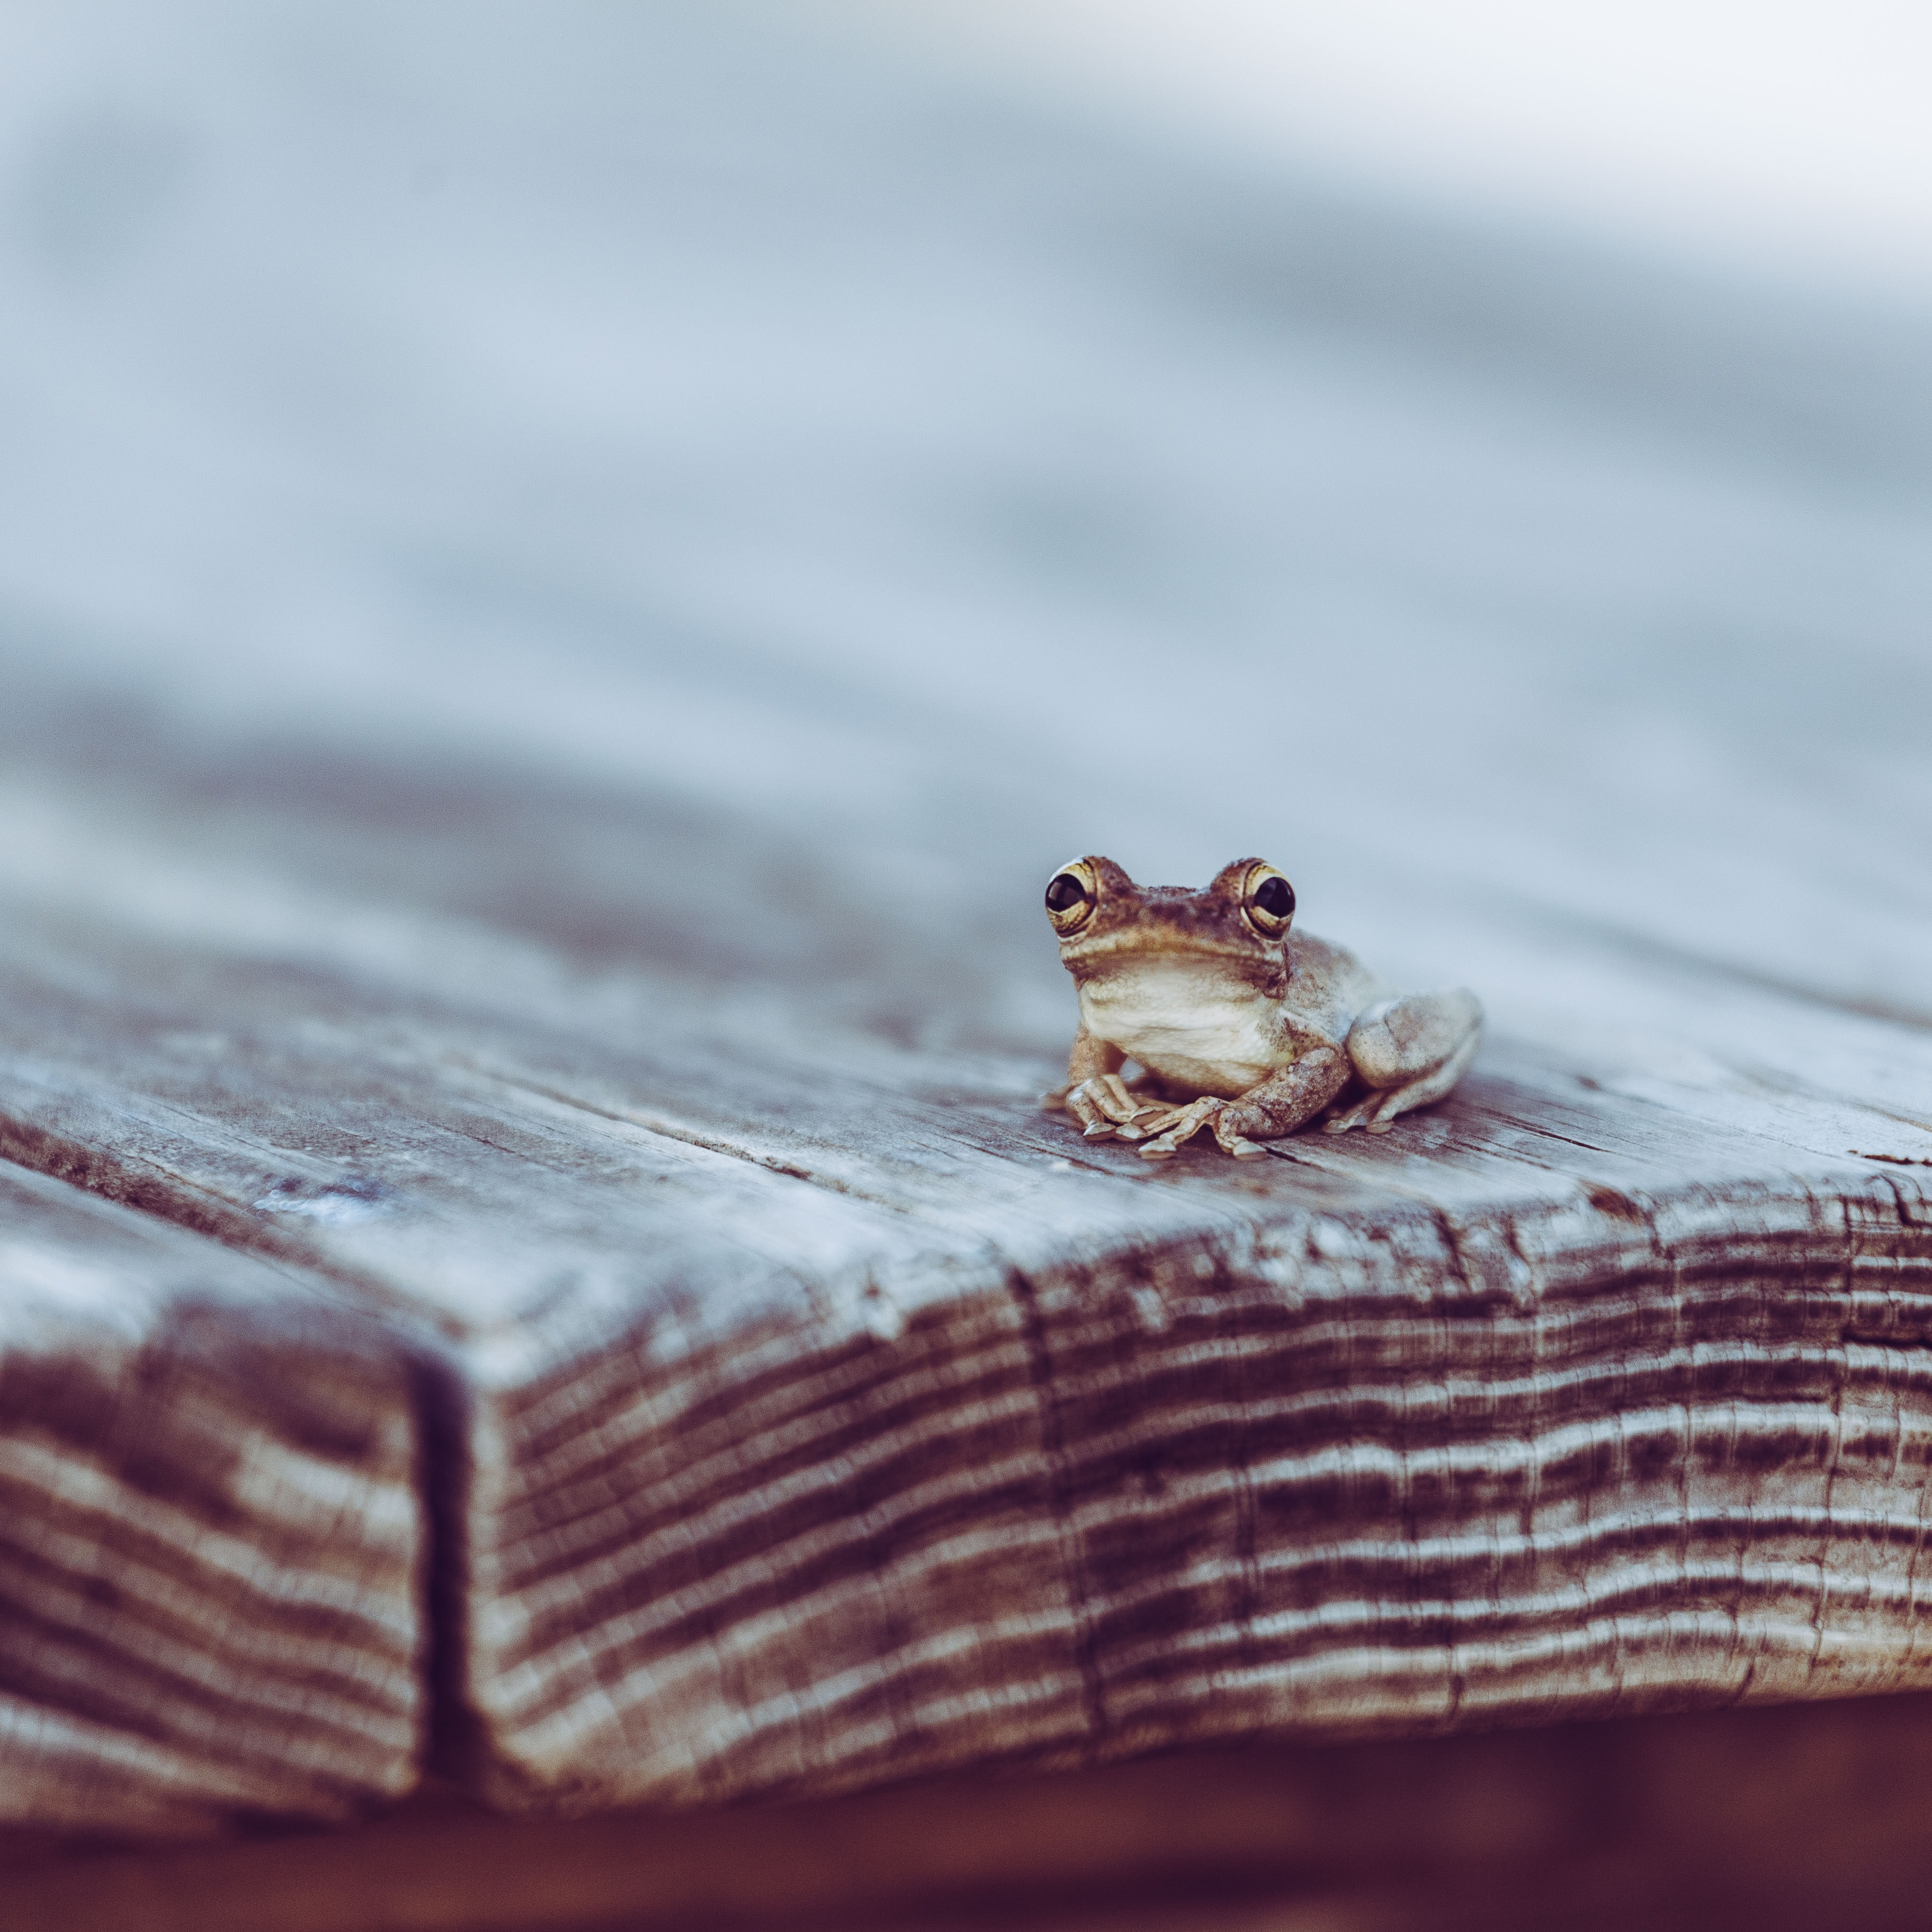 small black frog on wooden surface